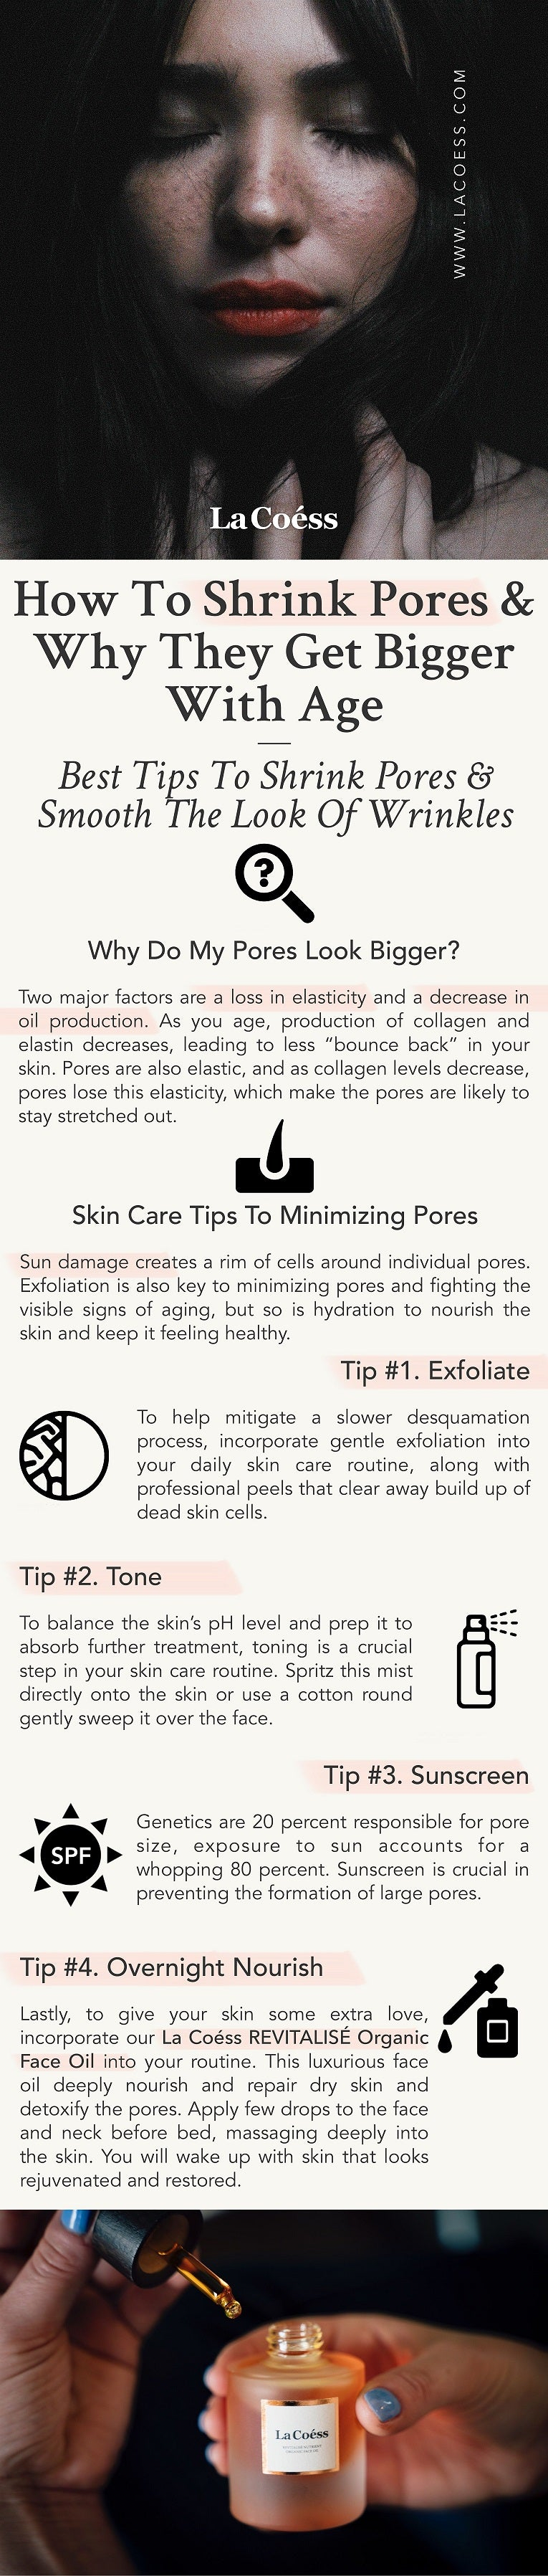 How to Shrink Pores & Why they get bigger with age